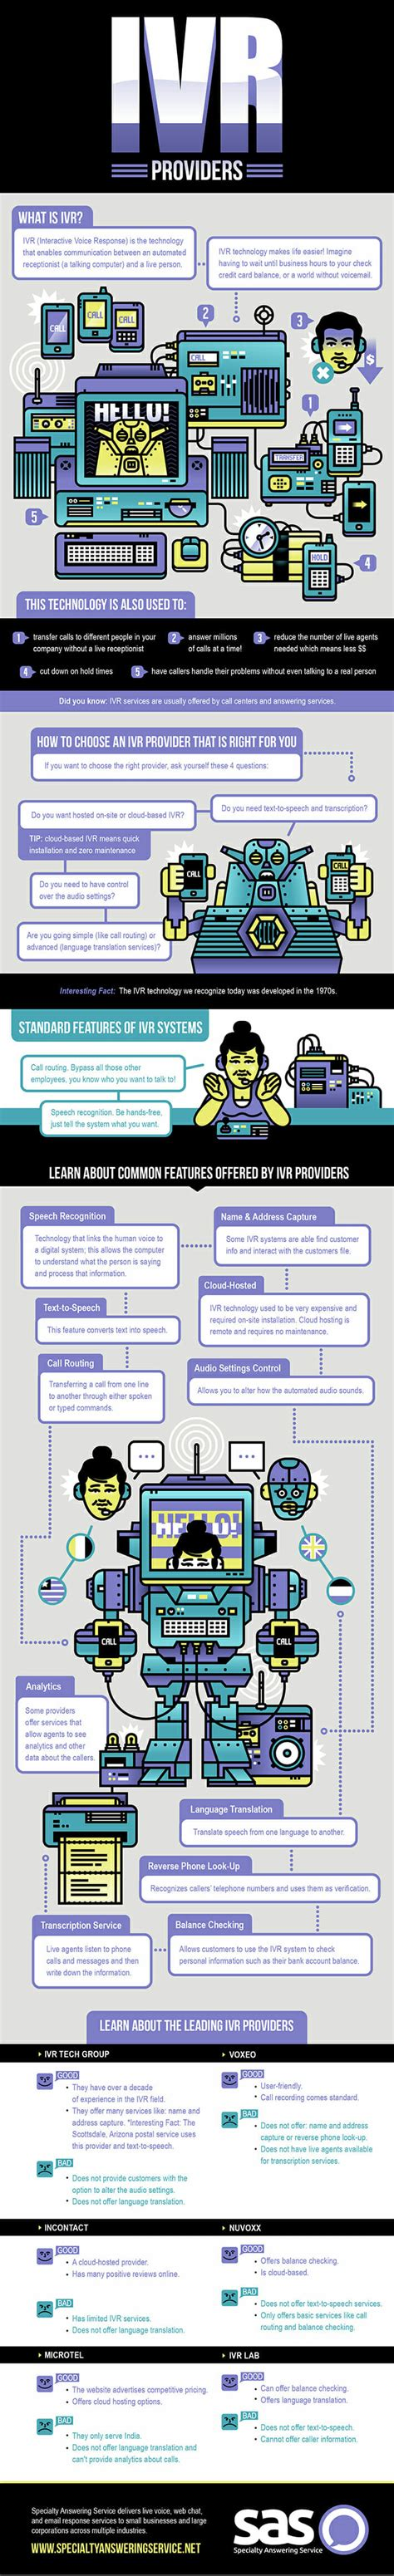 best providers infographic comparing top 6 best ivr providers sas